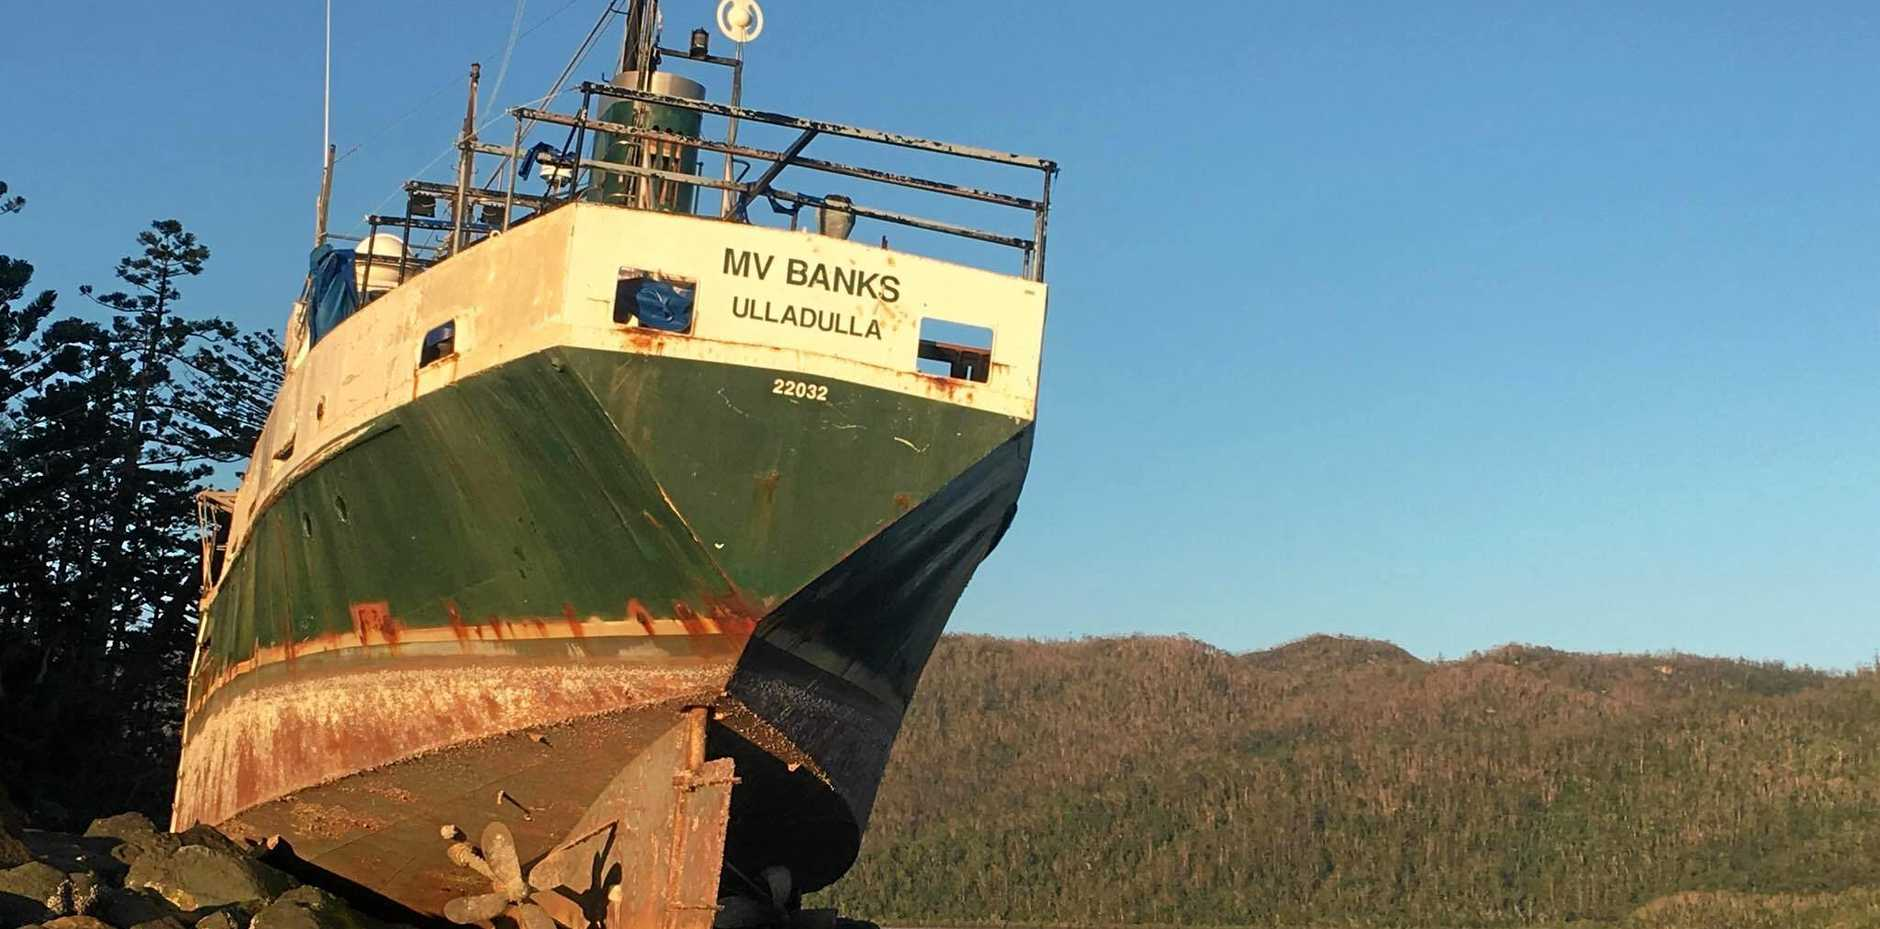 The MV Banks is still stranded at Cid Harbour after Cyclone Debbie, however tenders have been issued for its removal.